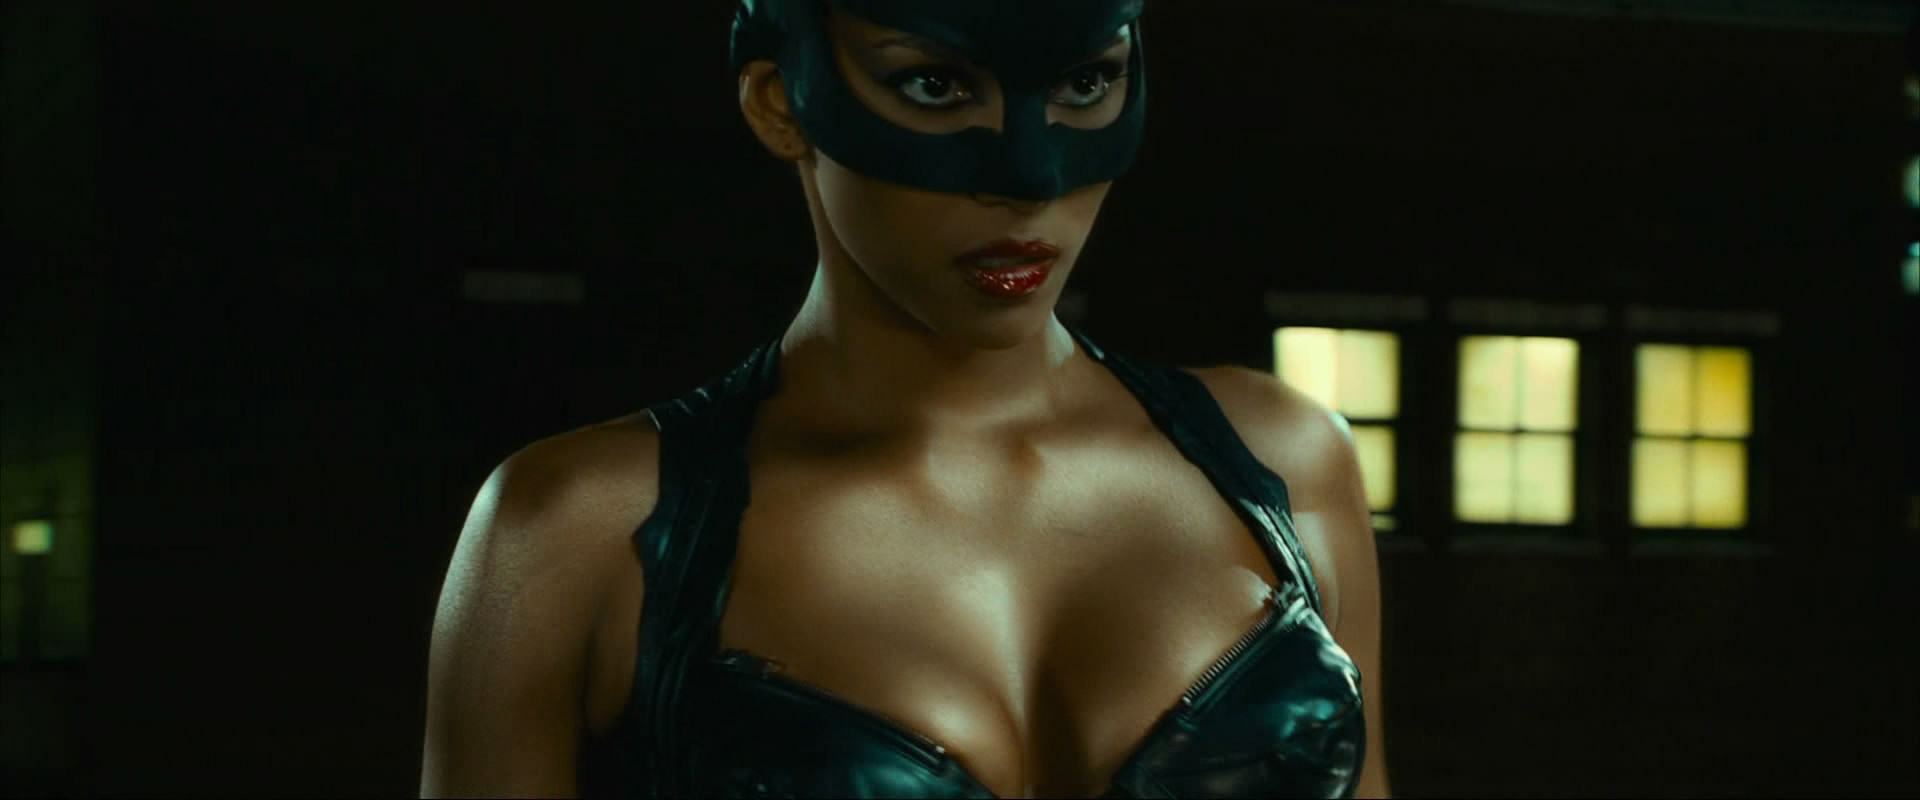 Catwoman halle berry sex lasbein exposed clip